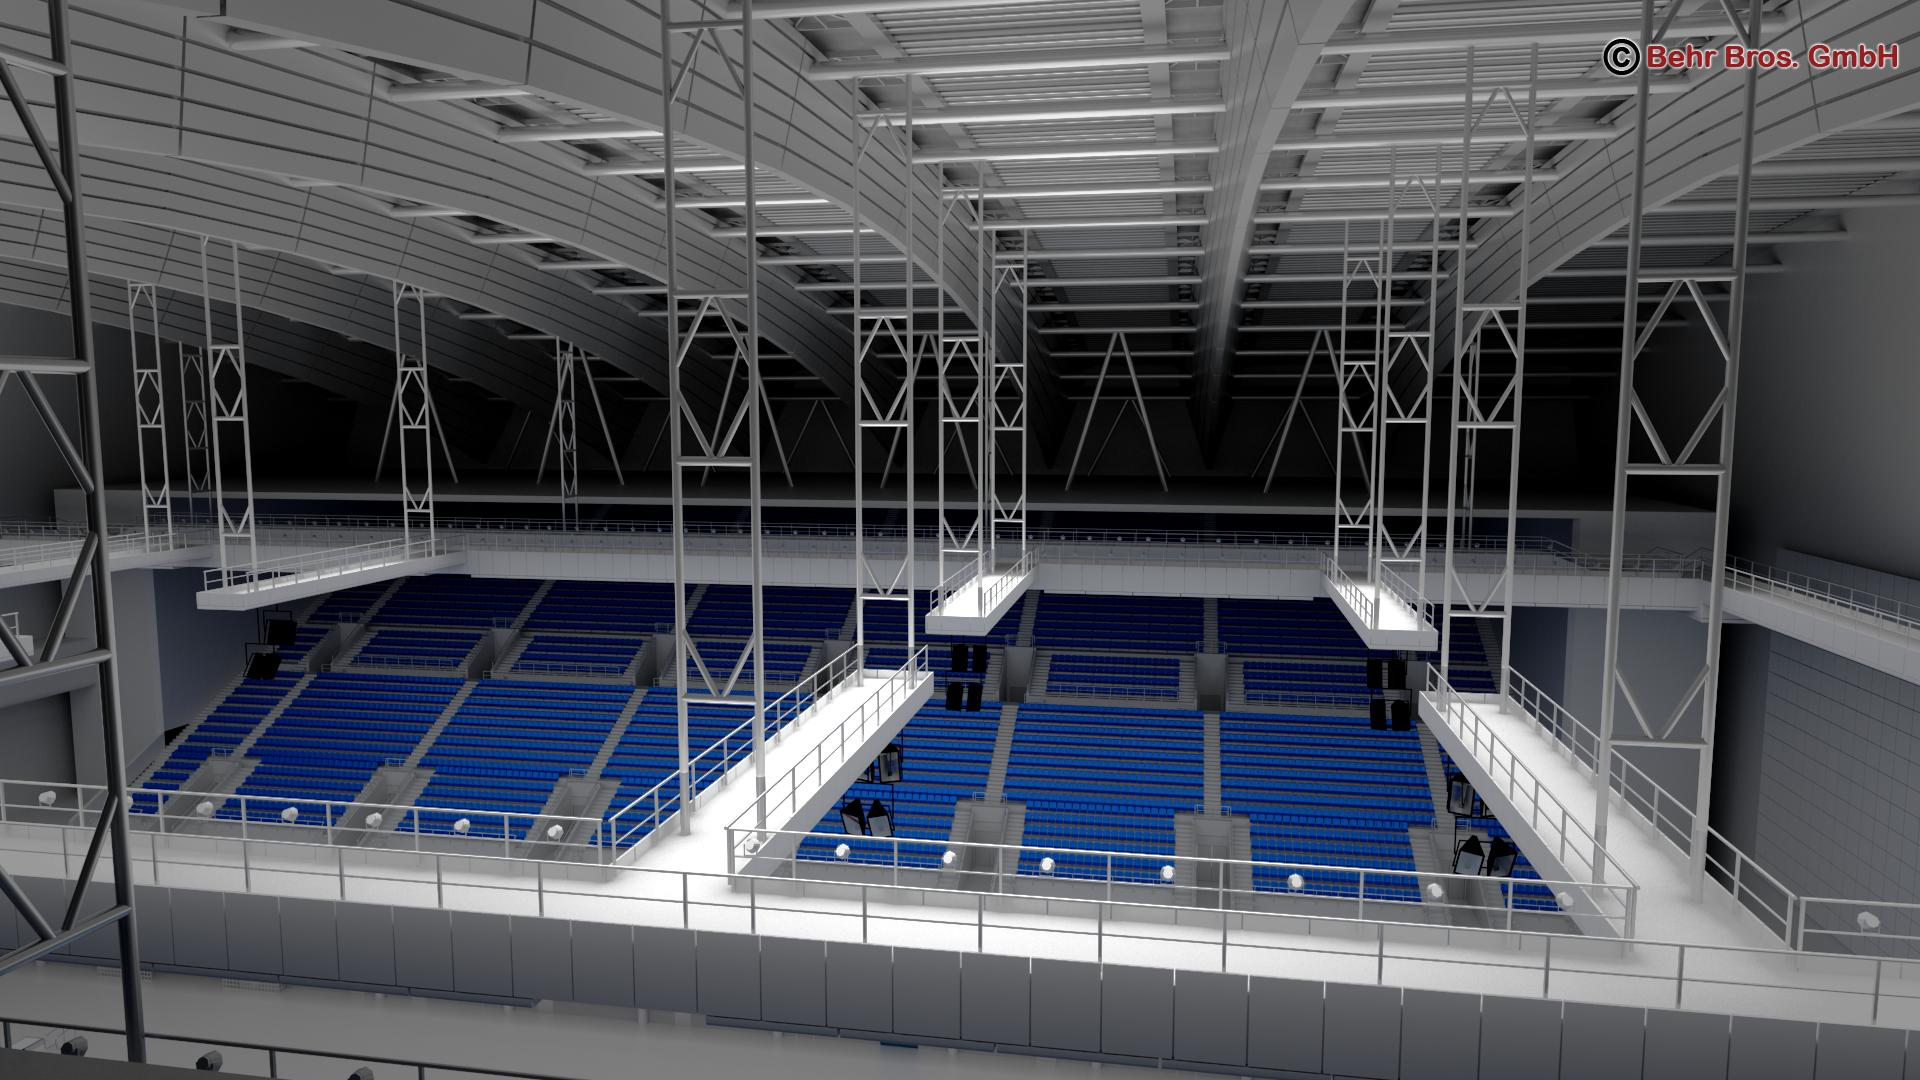 swim stadium 3d model 3ds max fbx c4d lwo ma mb obj 204437